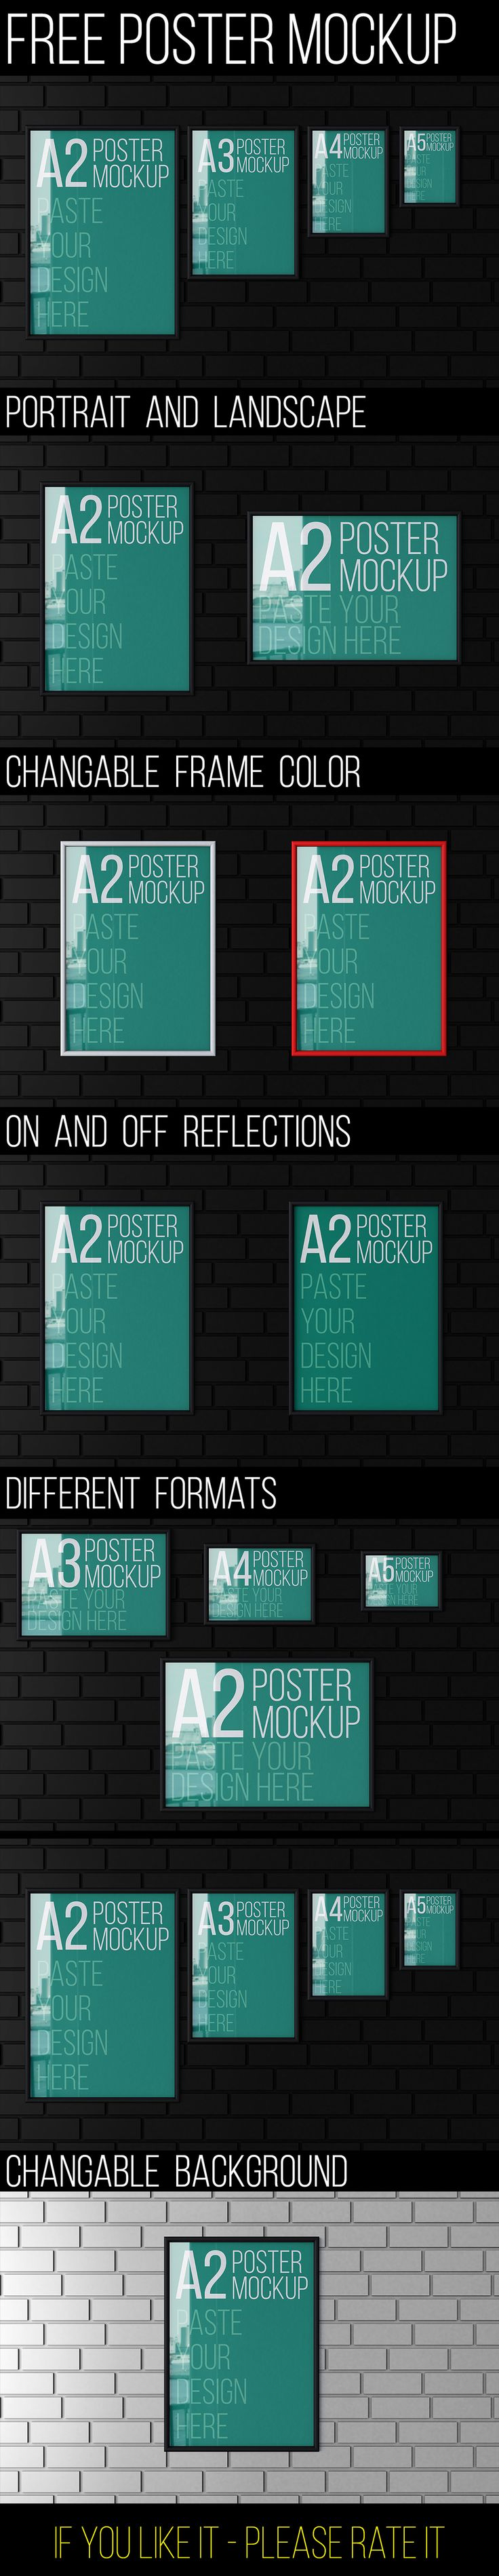 Poster design resources - Free Poster Mockup A4 Display Free Graphic